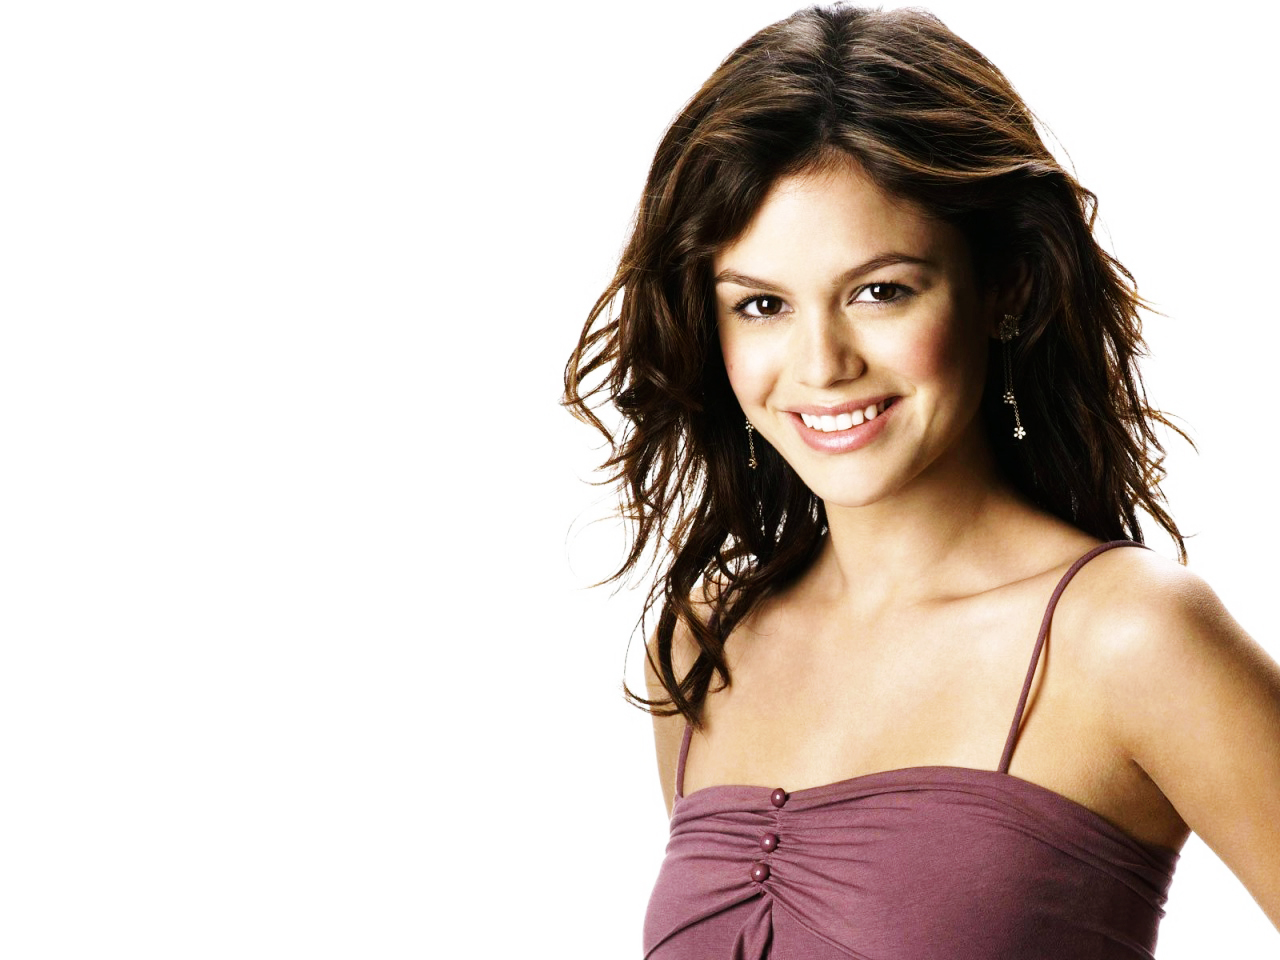 Rachel Bilson Celebrities Wallpapers